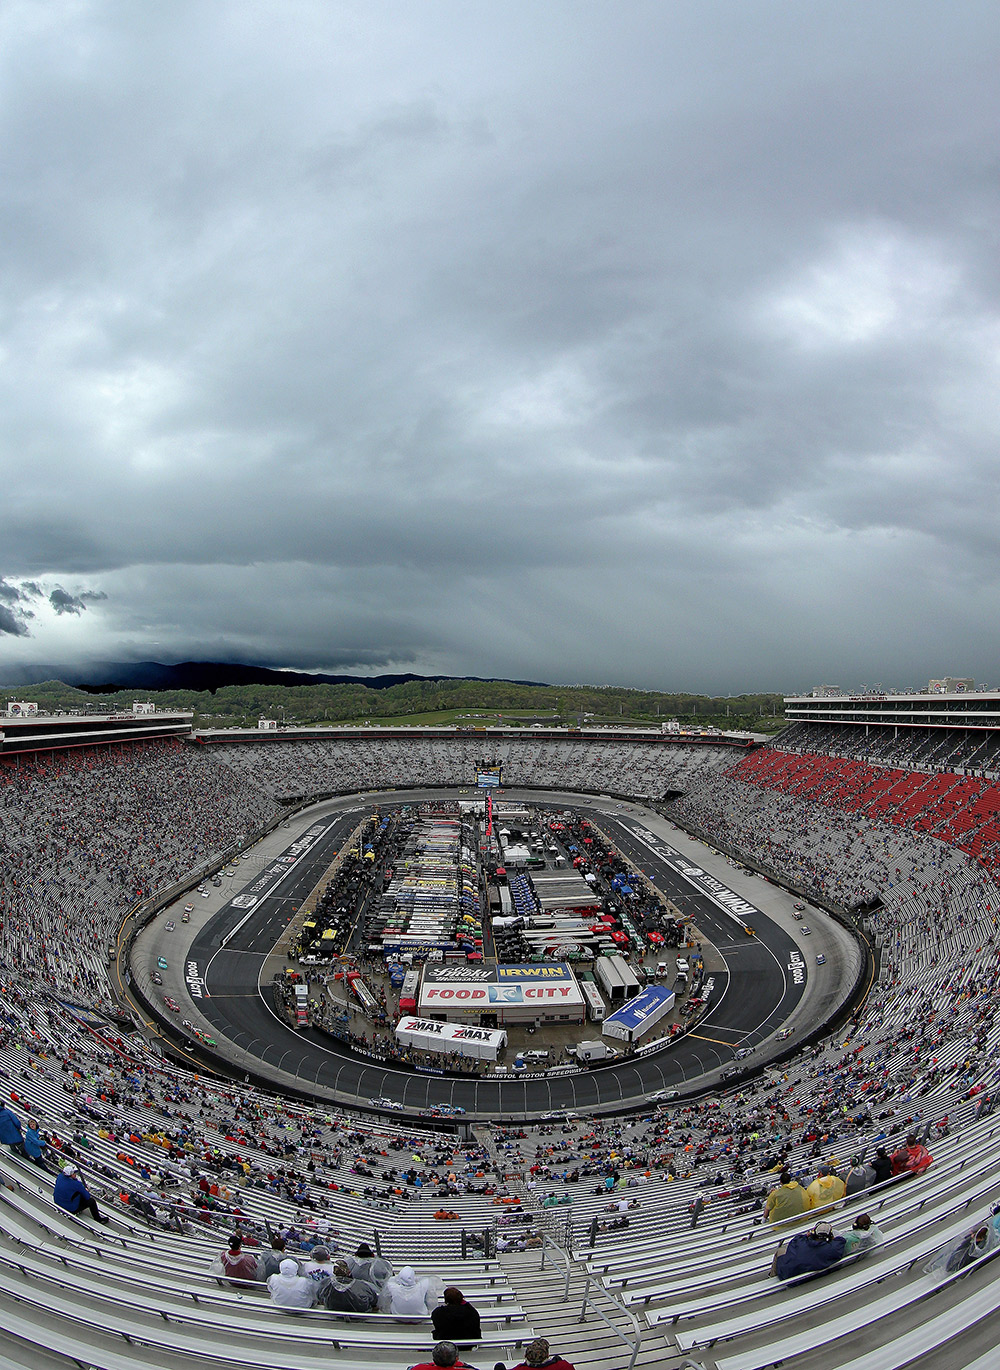 Must see photos of the Food City 500